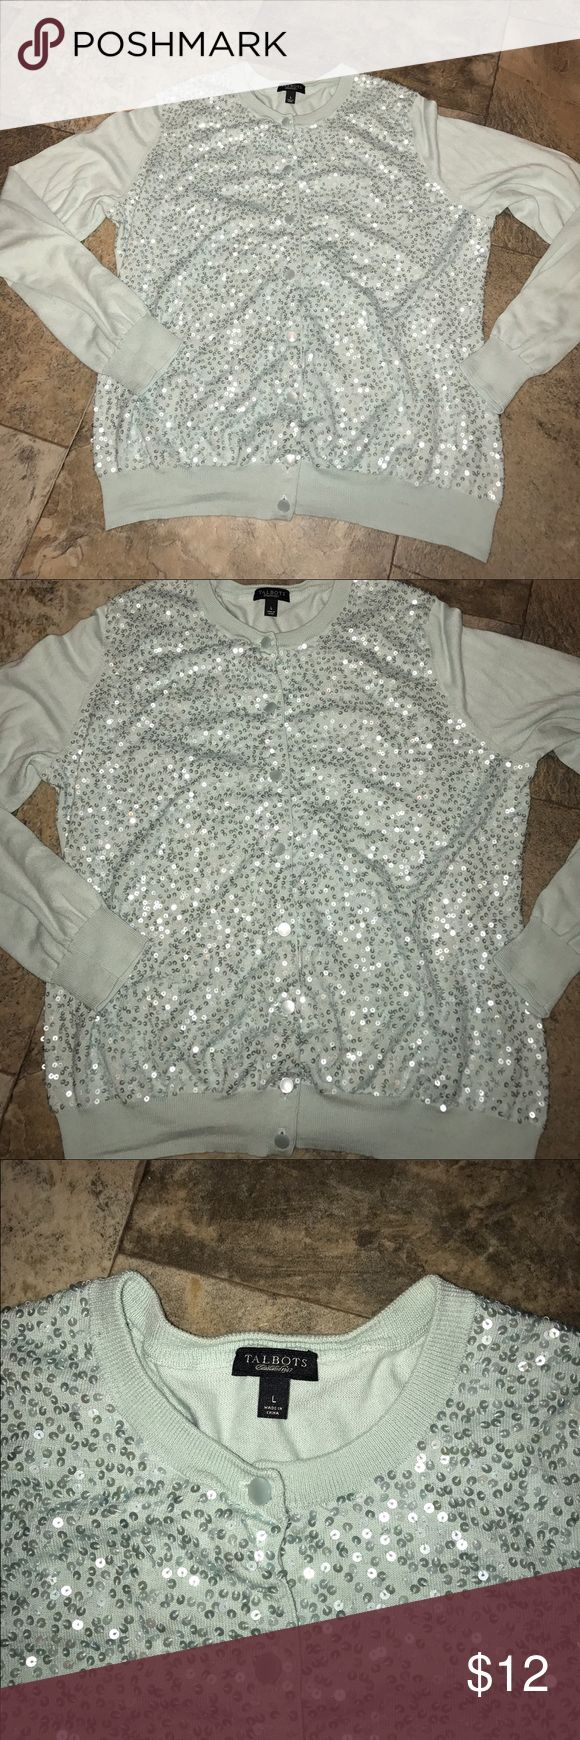 Talbots cardigan sweater with sequins! EUC large Talbots cardigan sweater with sequins! EUC size large Talbots Sweaters Cardigans